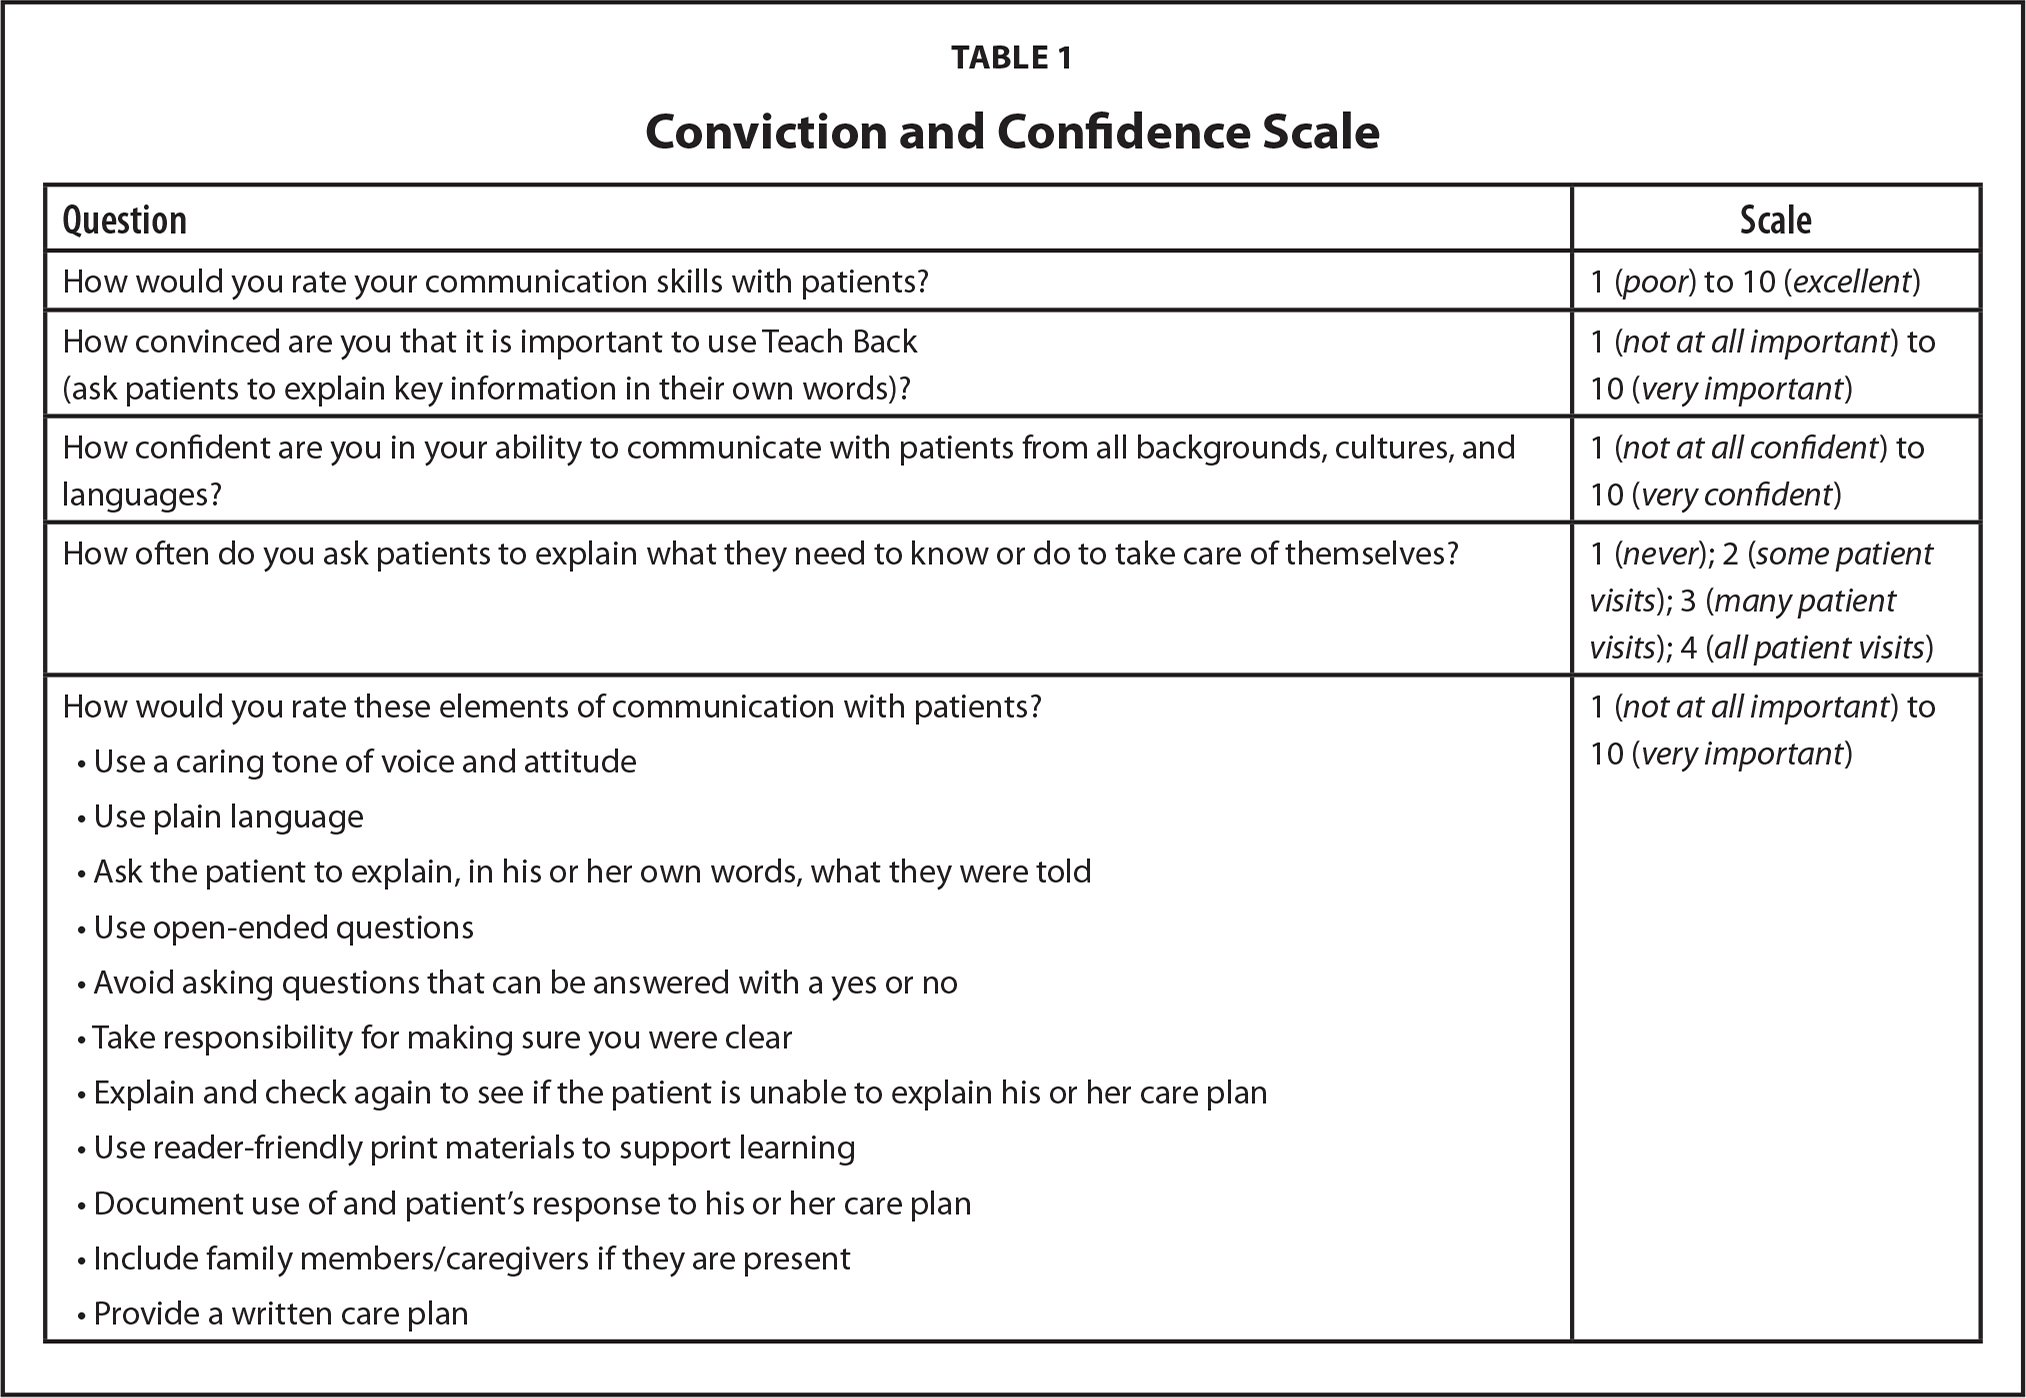 Conviction and Confidence Scale